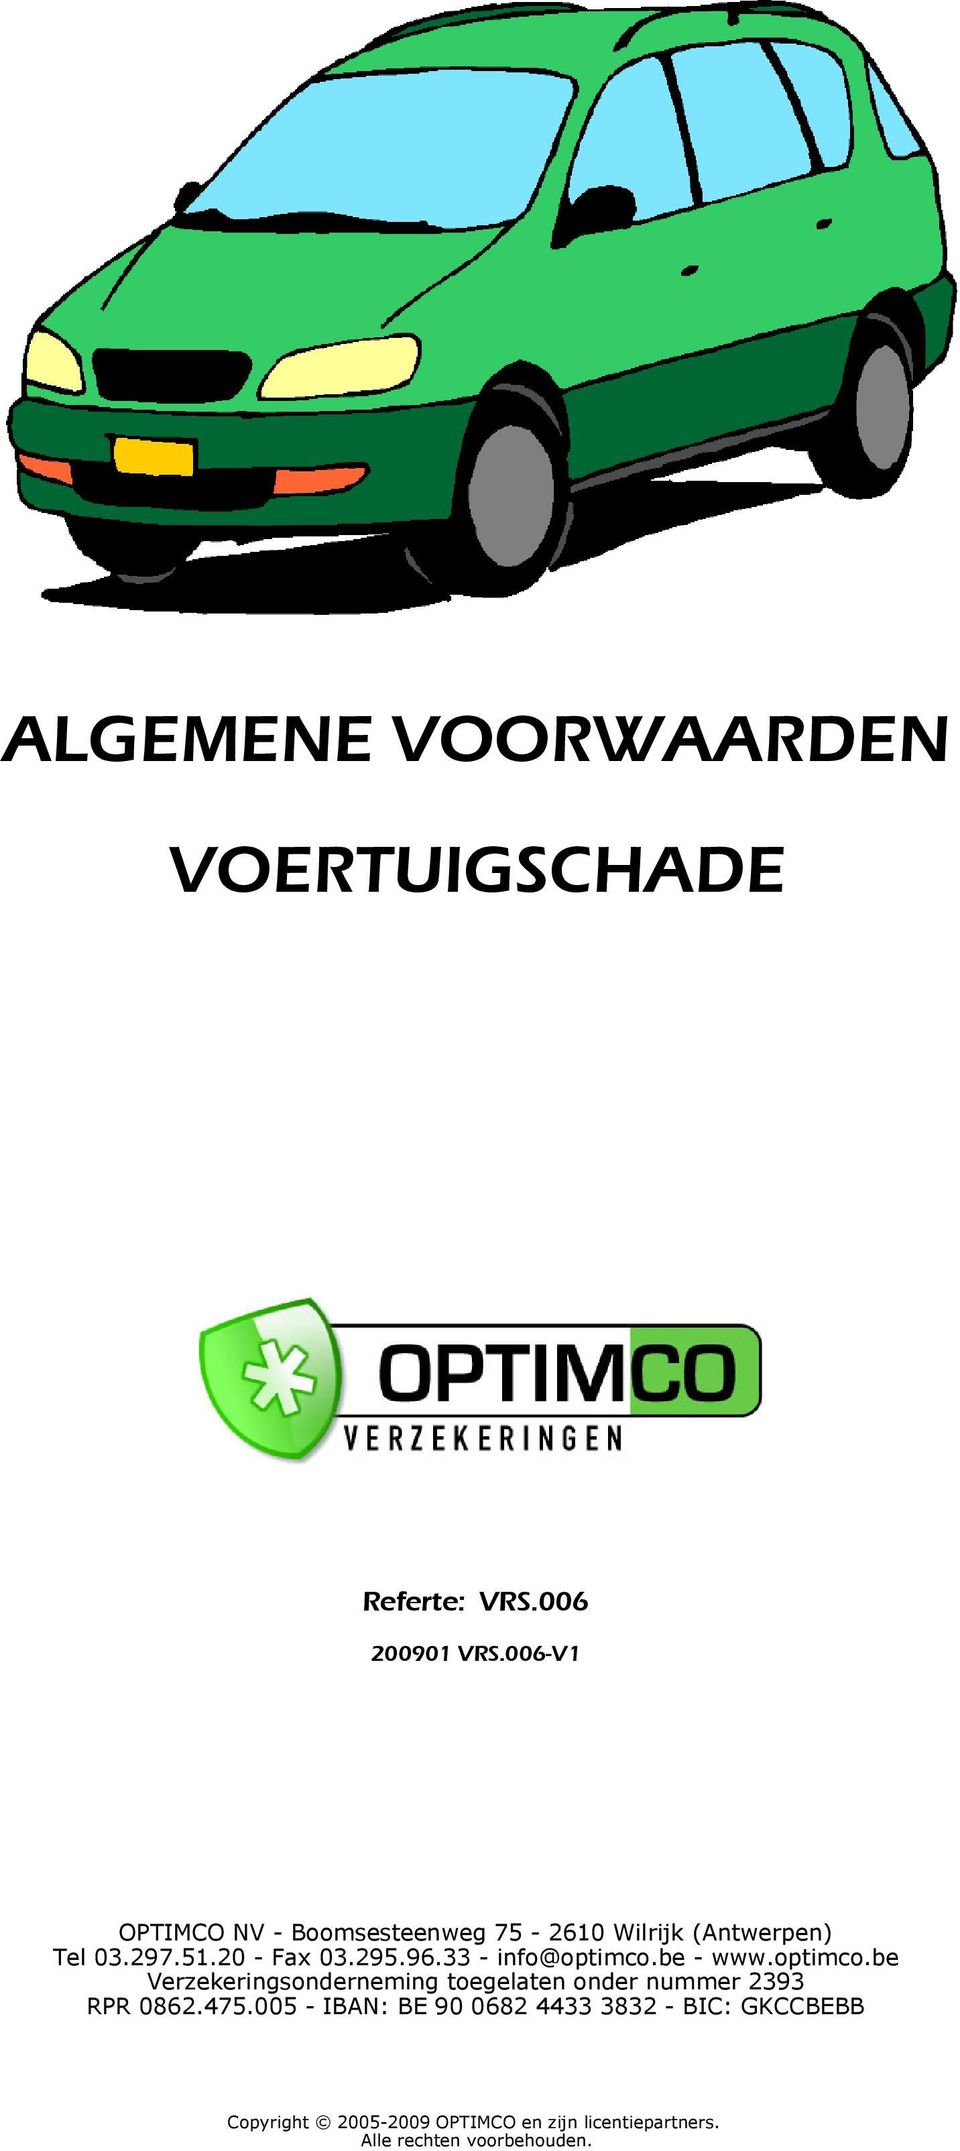 33 - info@optimco.be - www.optimco.be Verzekeringsonderneming toegelaten onder nummer 2393 RPR 0862.